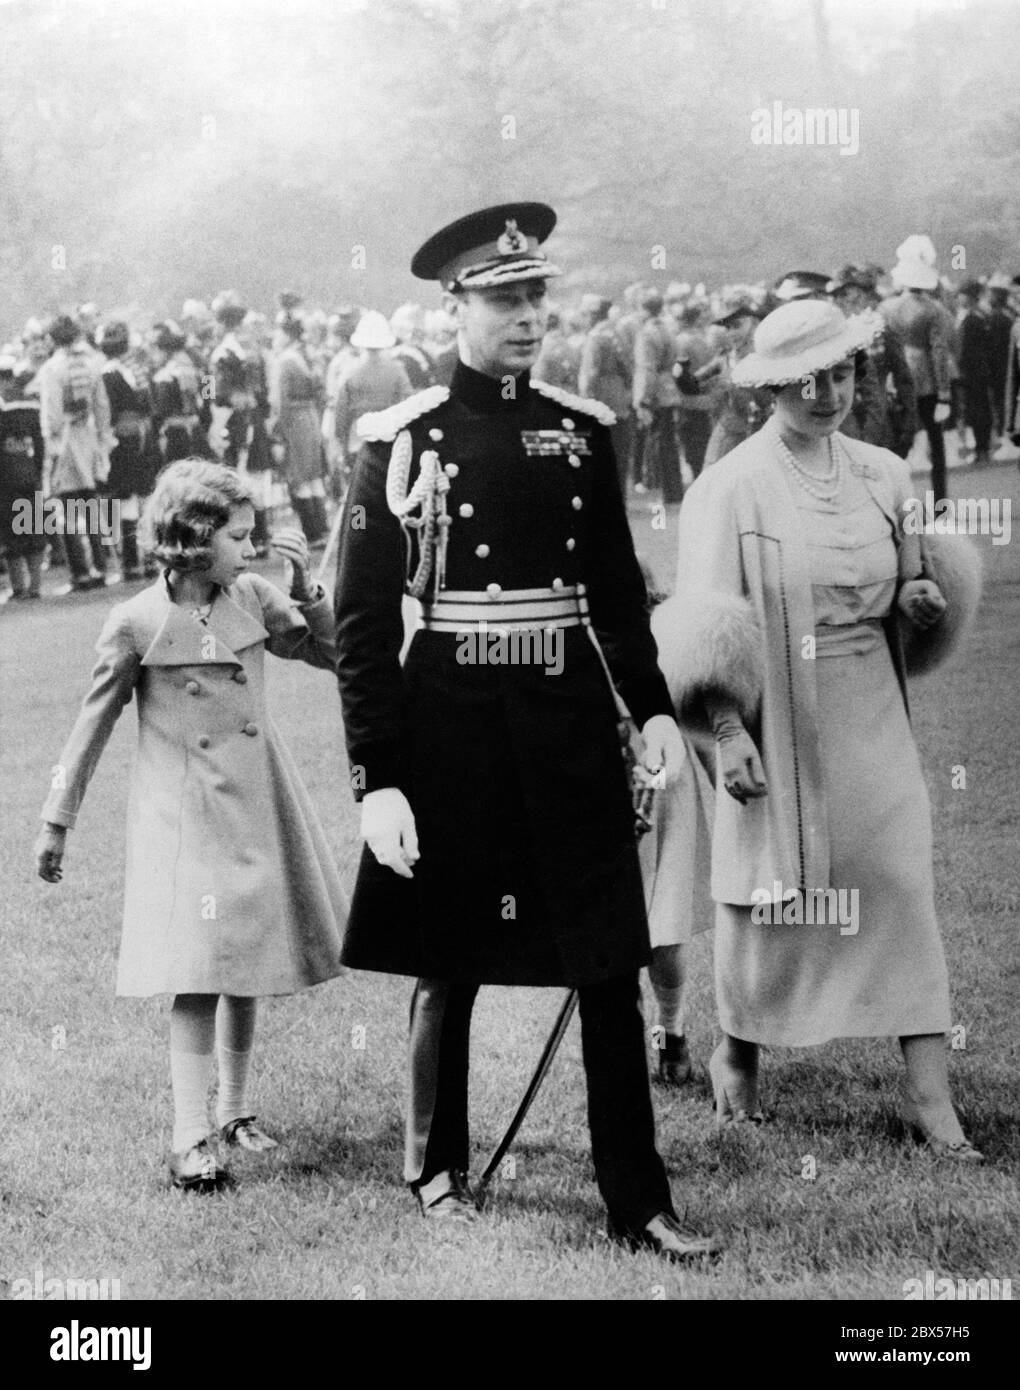 King George VI, Queen Elizabeth, Princess Elizabeth and Princess Margaret Rose ( hidden) on their way to the parade ground for the presentation of the special Coronation Medals for the Dominions and Colonial troops that will be presented at his coronation at Buckingham Palace. Over 1500 soldiers salute the Royal Family. Stock Photo